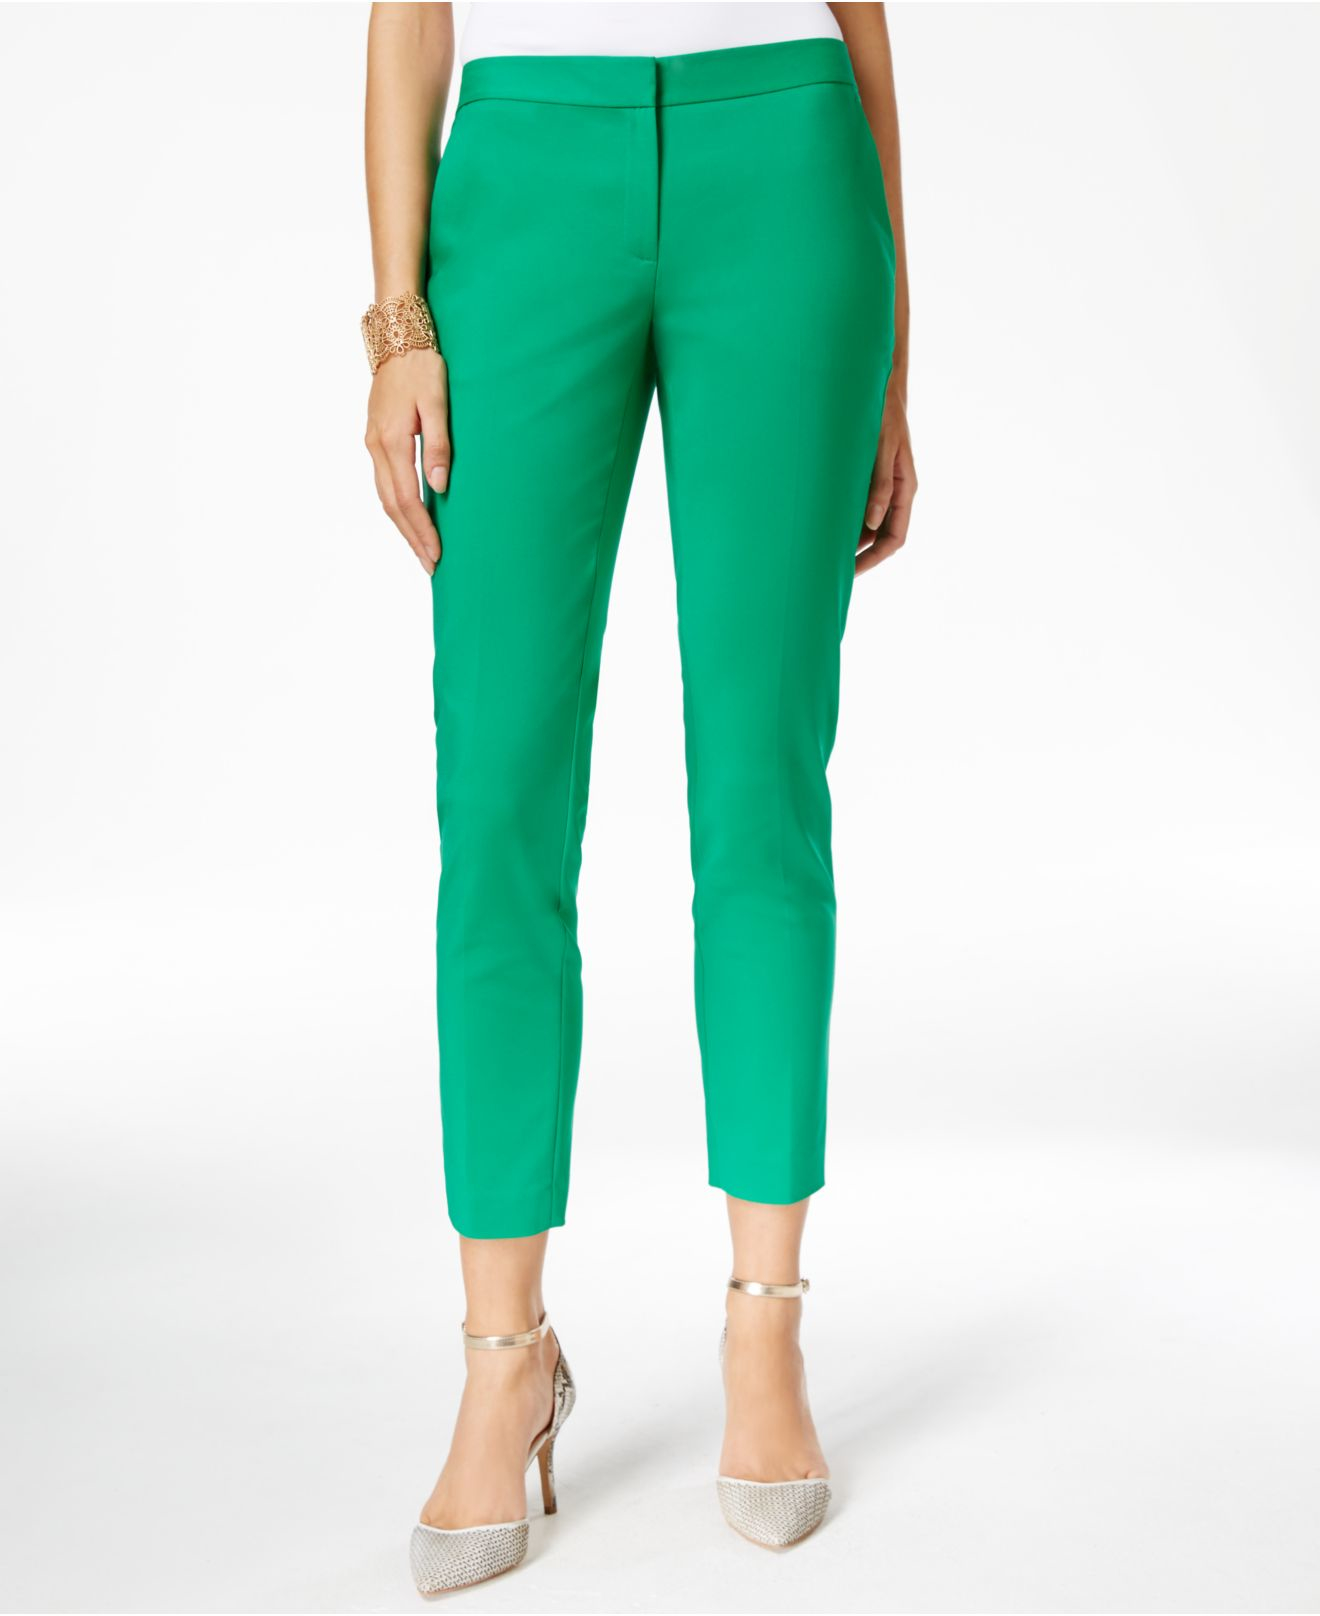 Cece by cynthia steffe Slim-leg Ankle Pants in Green | Lyst